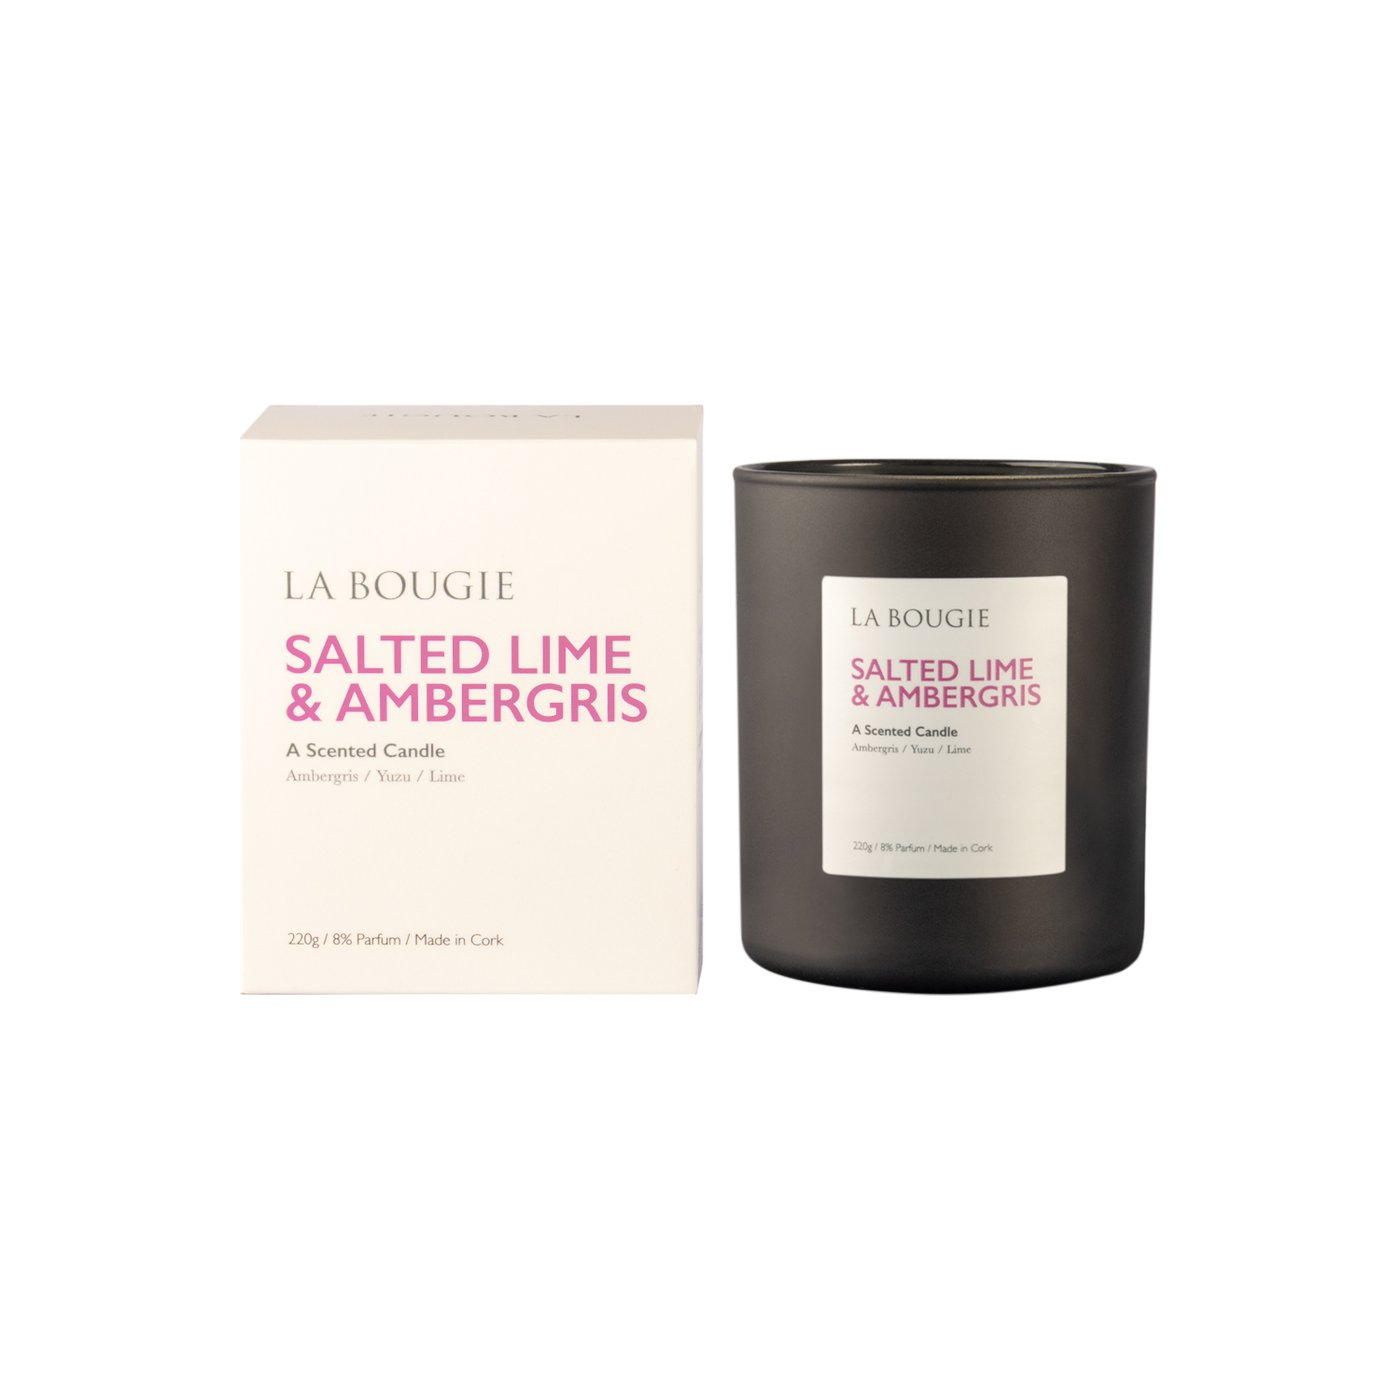 La Bougie Salted Lime & Ambergris Candle